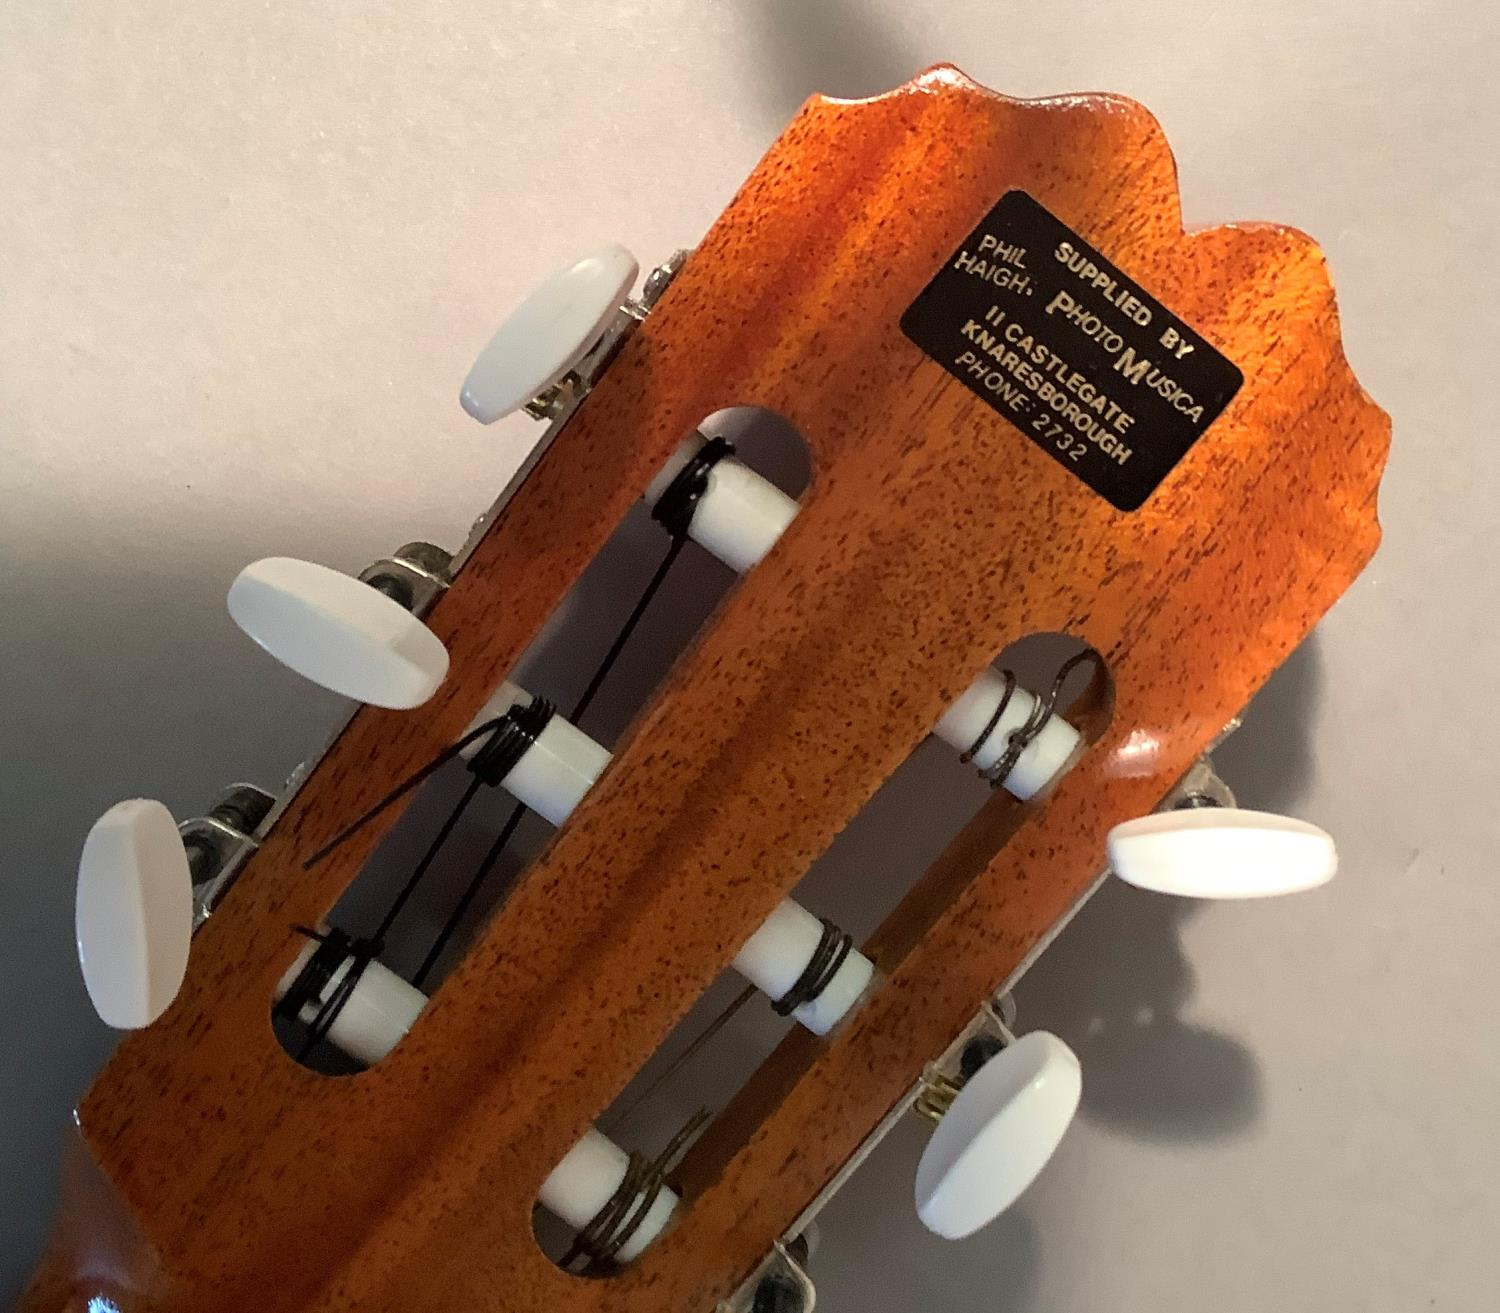 An Admira Almeria classical guitar with Oregon pine top and Sapelli back, ebonized finger plate - Image 4 of 6